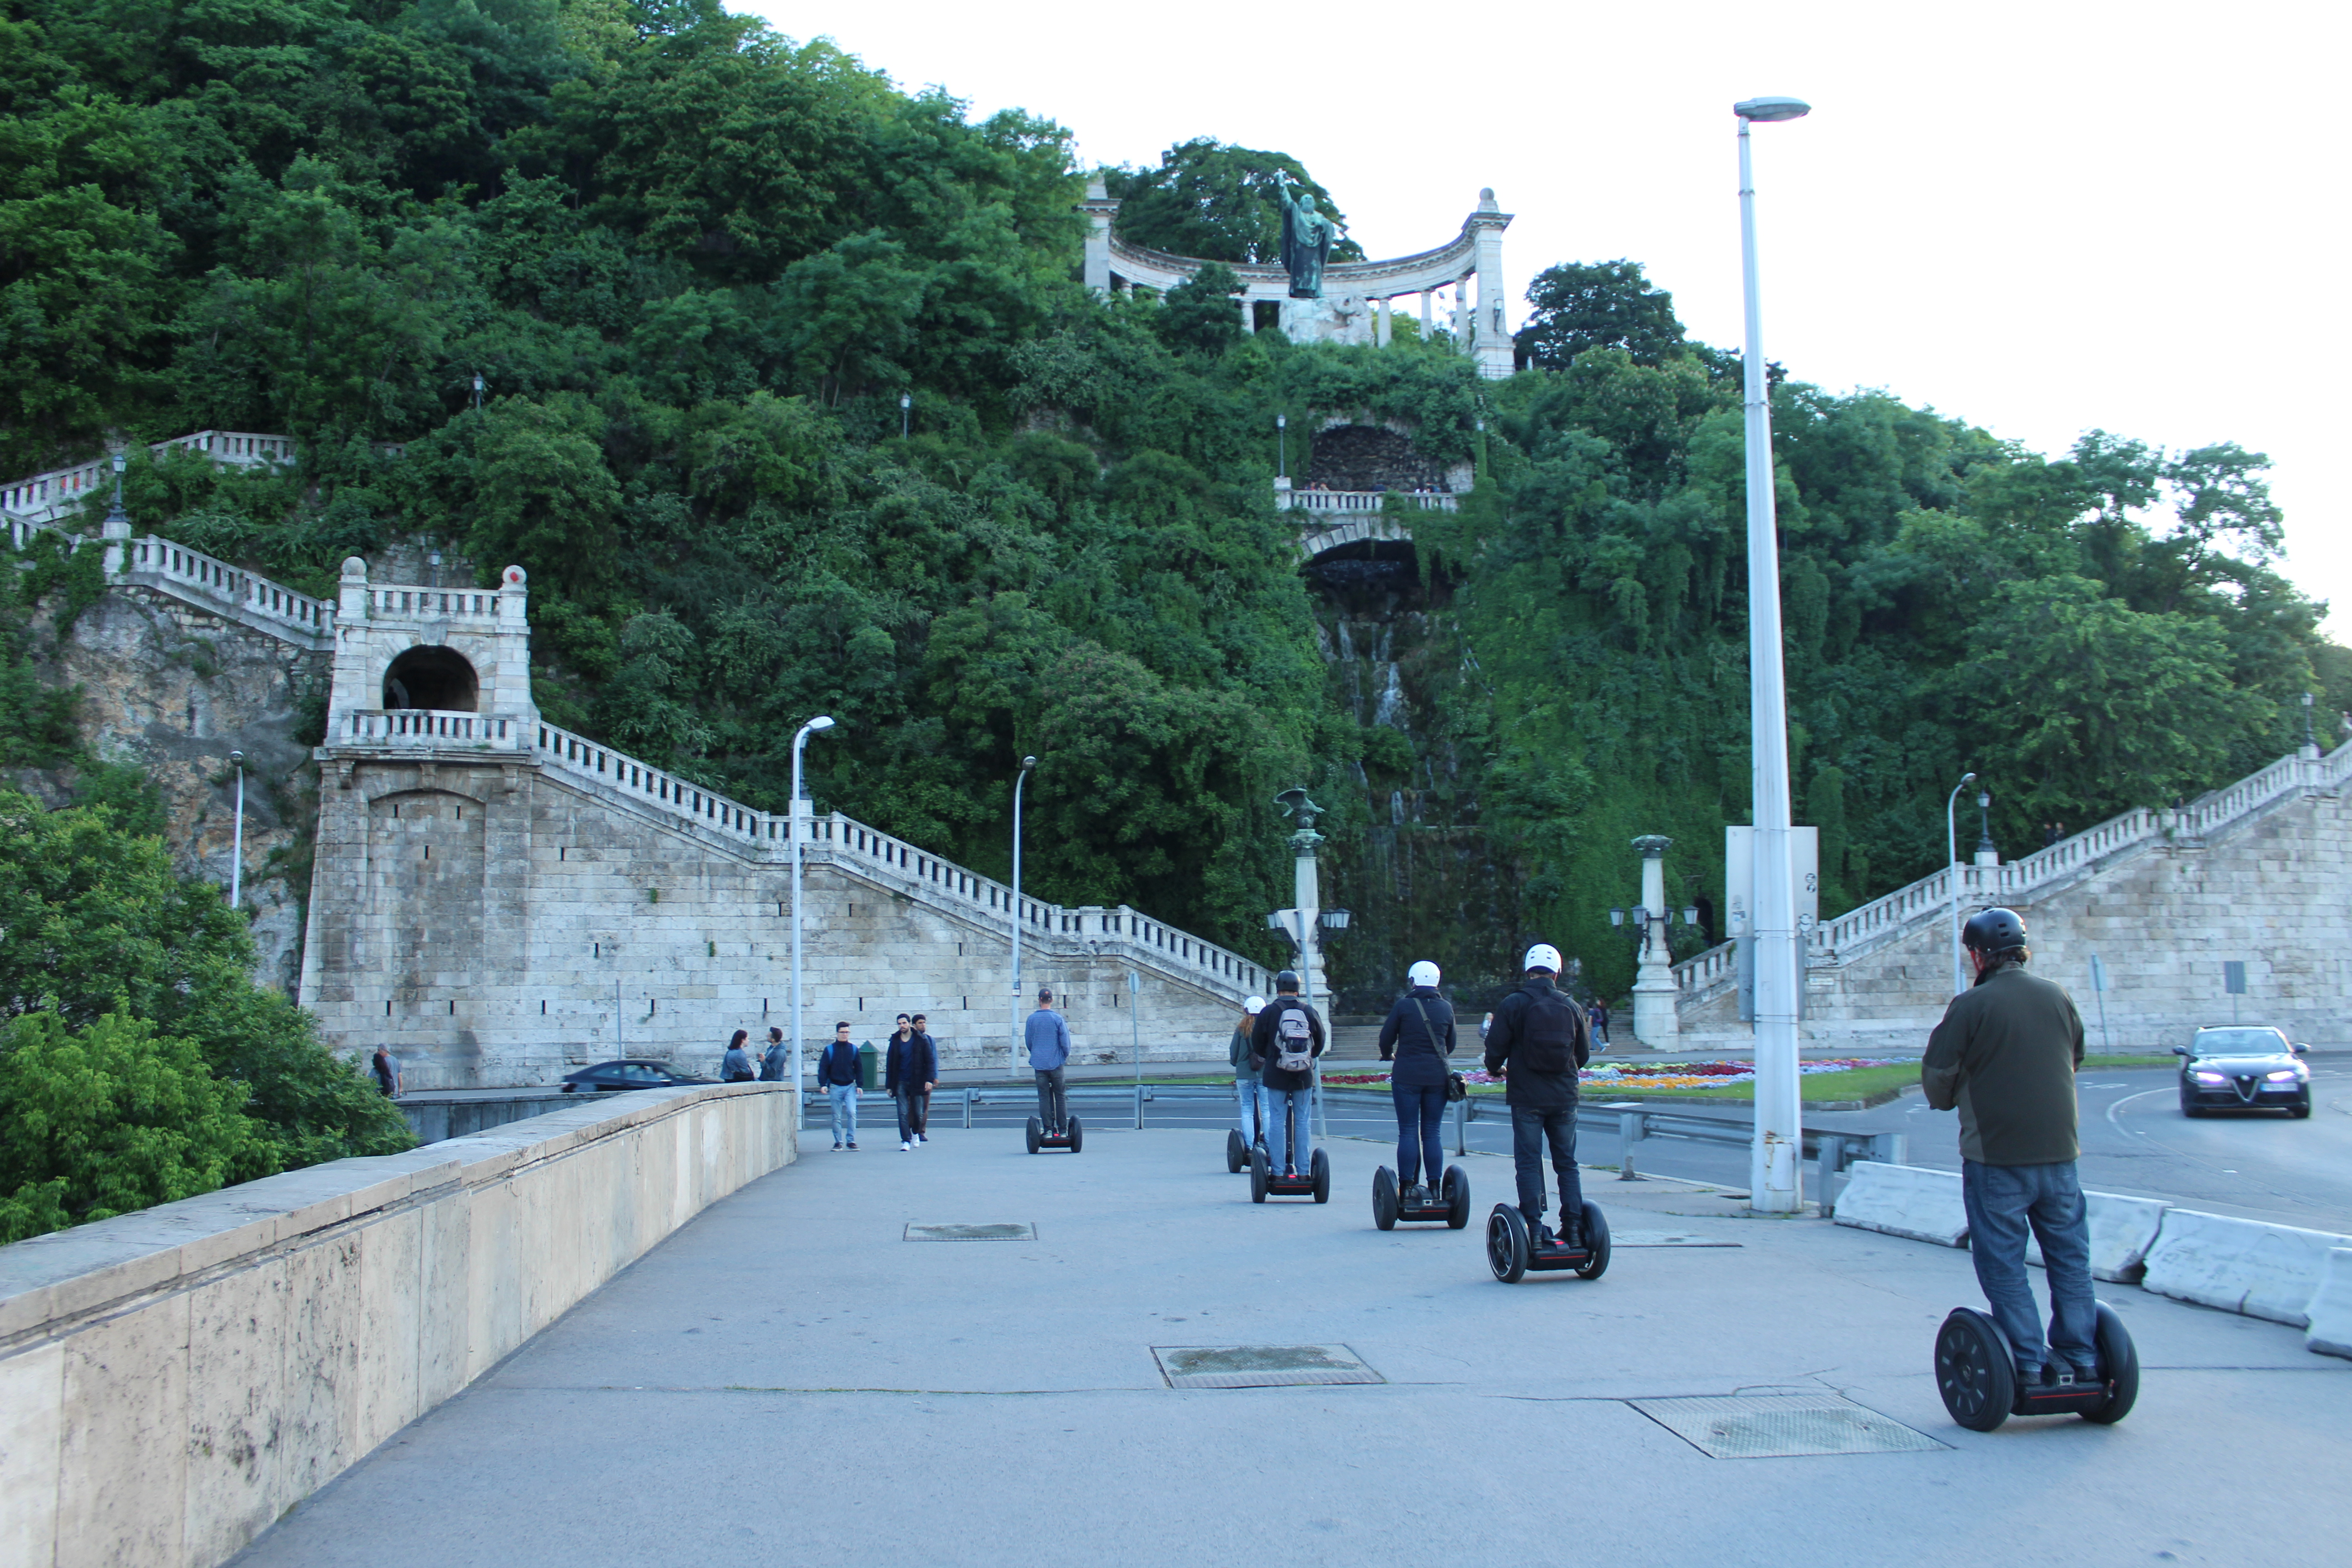 Gellert Waterfall Segway Tour